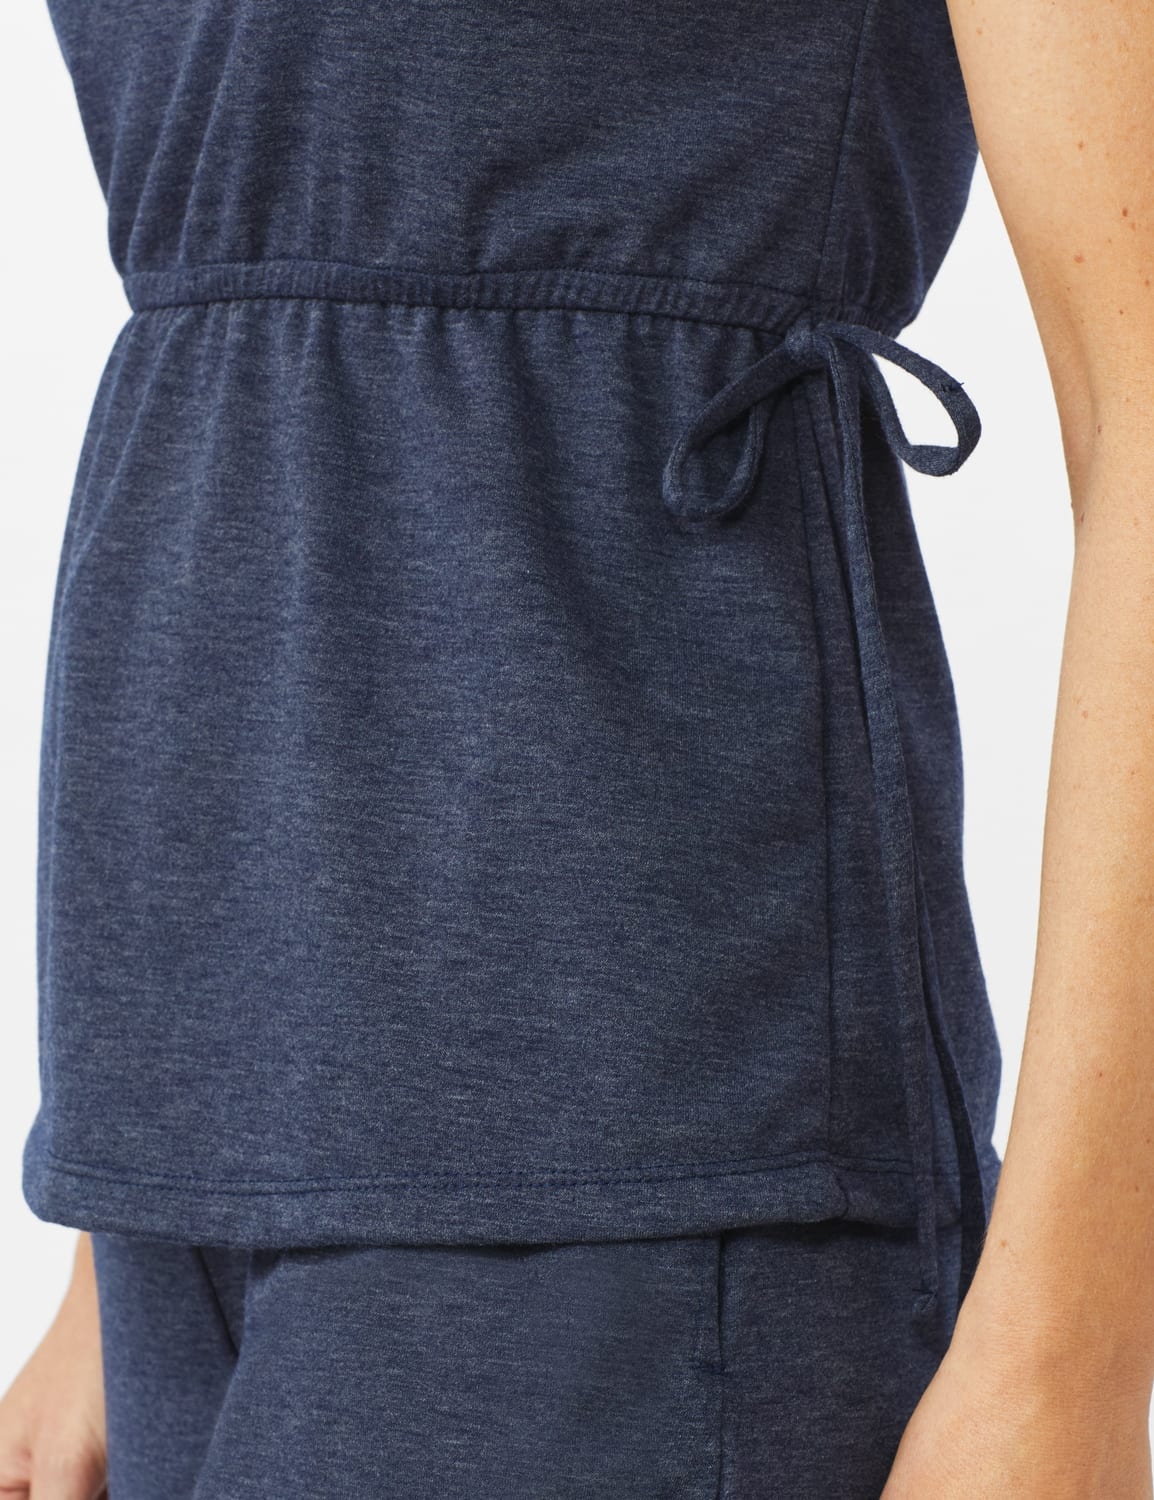 Cinch Waist Heathered Knit Top - Misses - Blue - Front